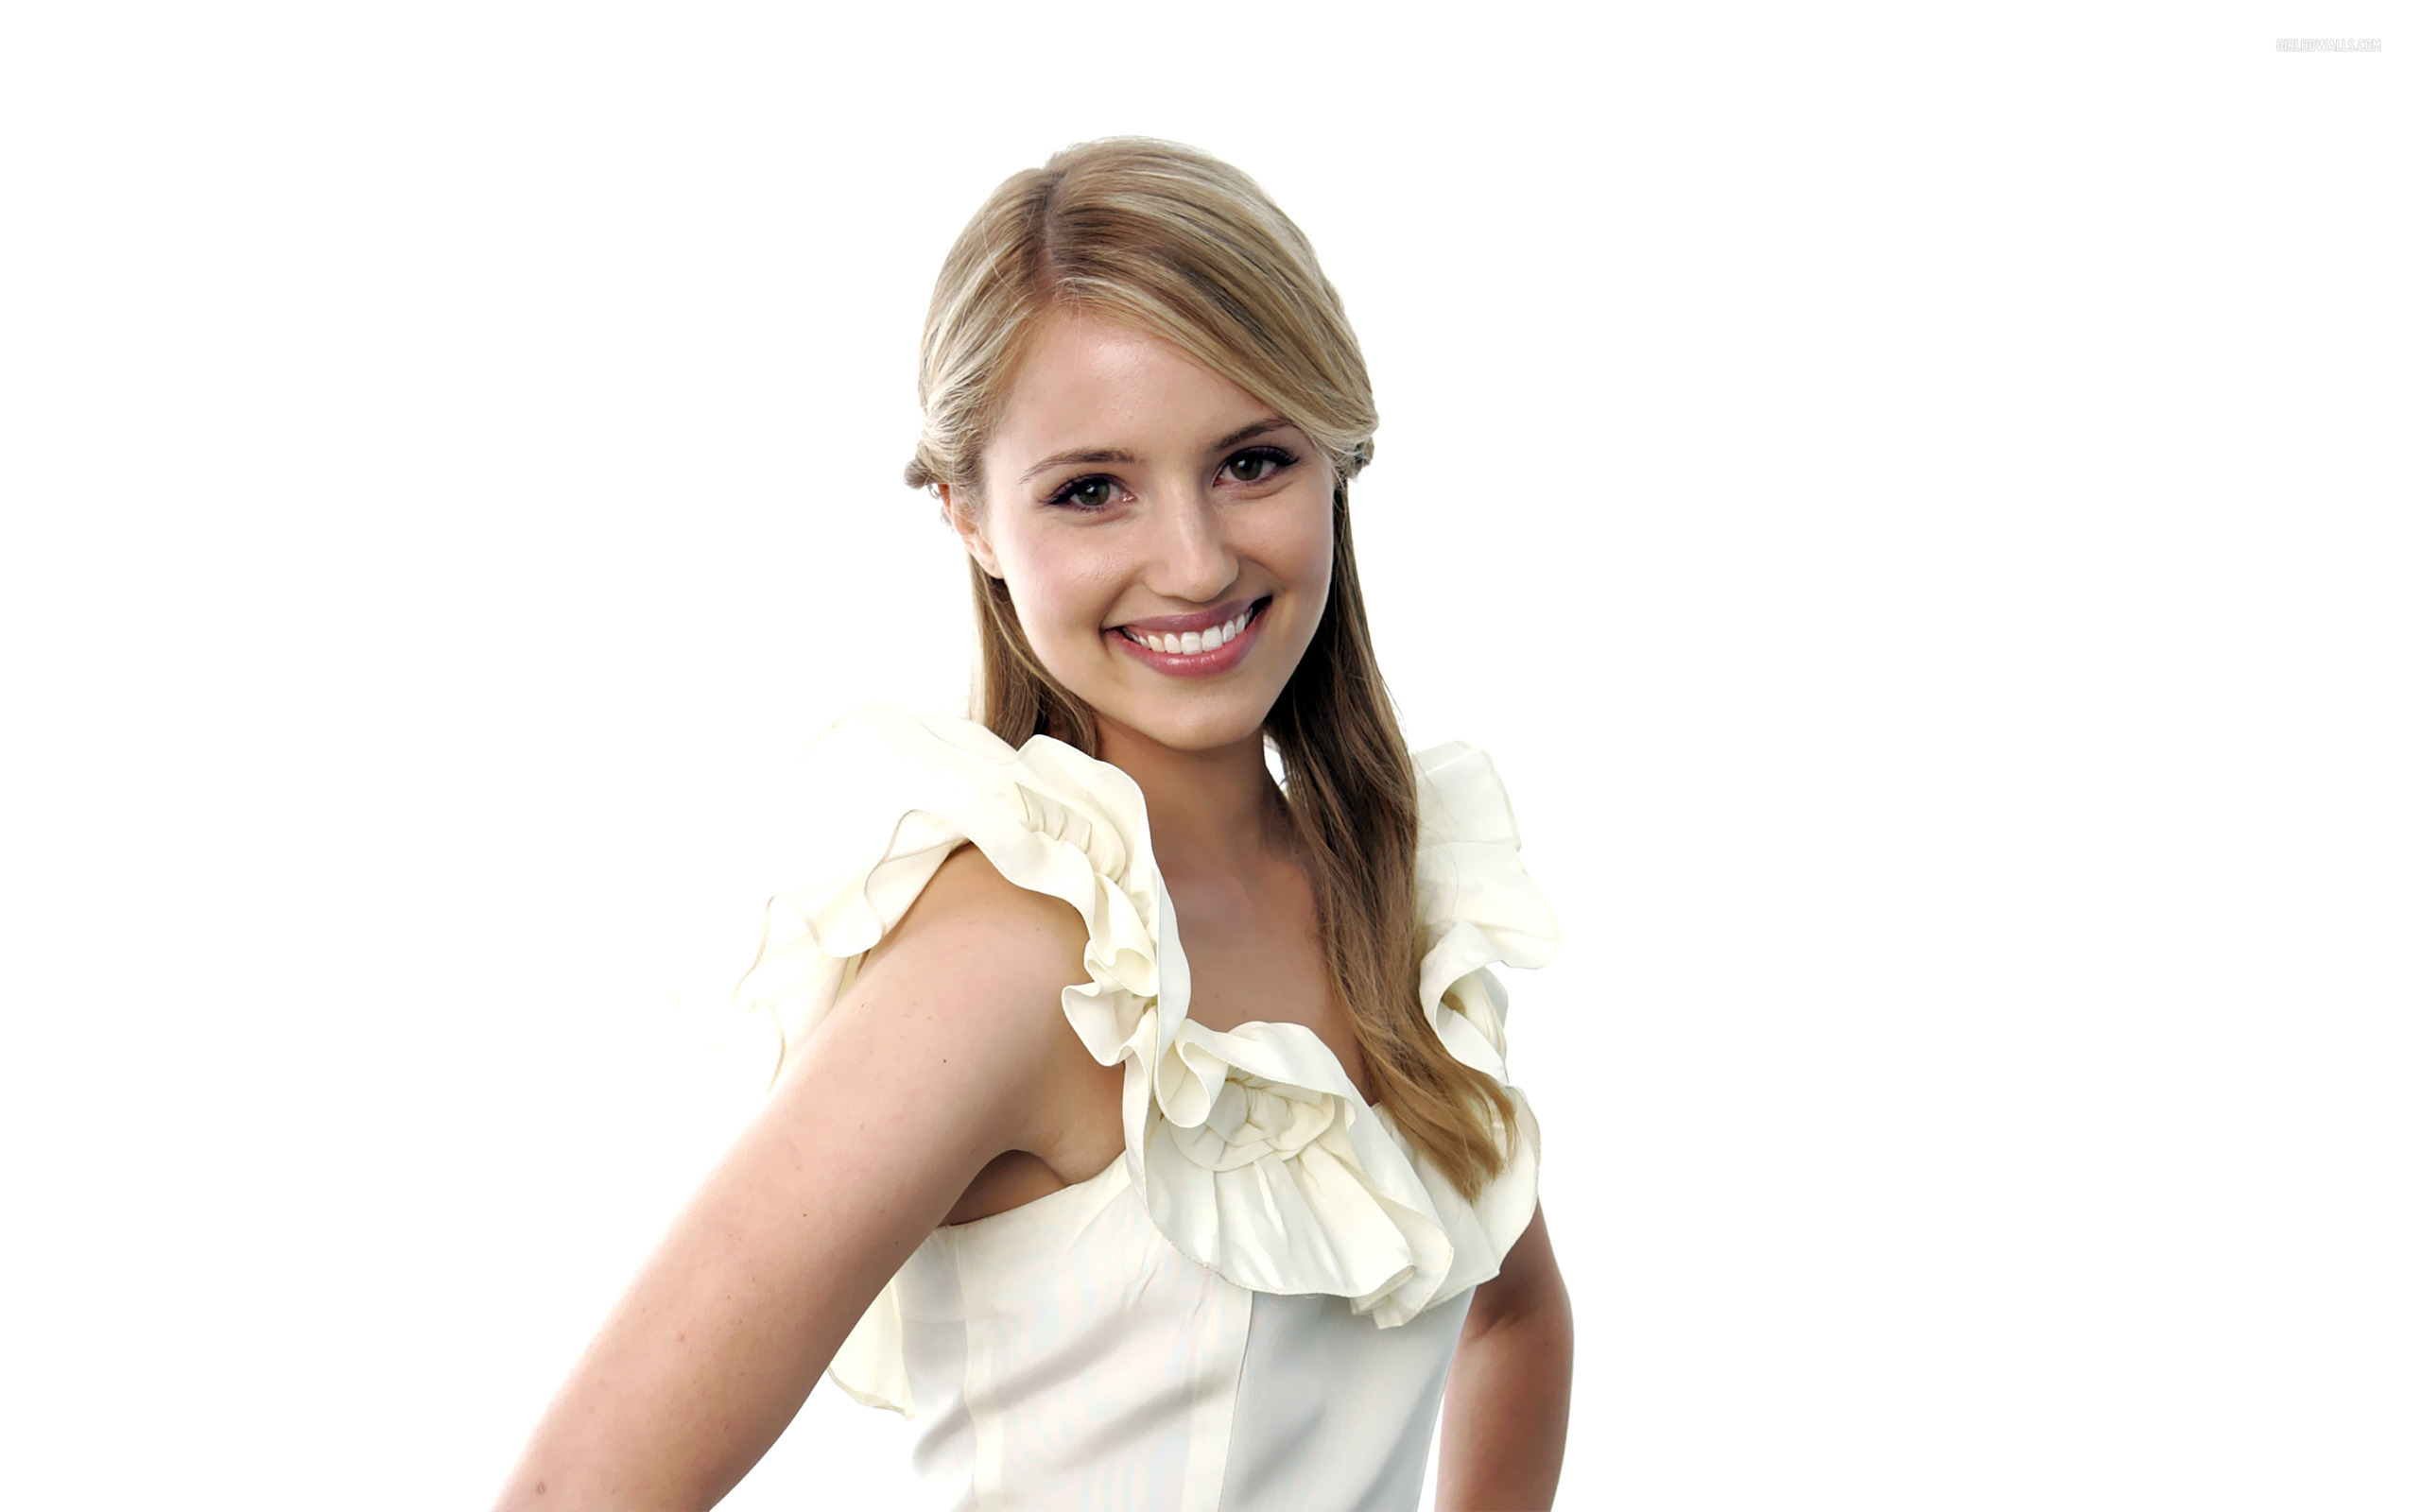 Glee images Quinn FabrayDianna Agron wallpaper and background